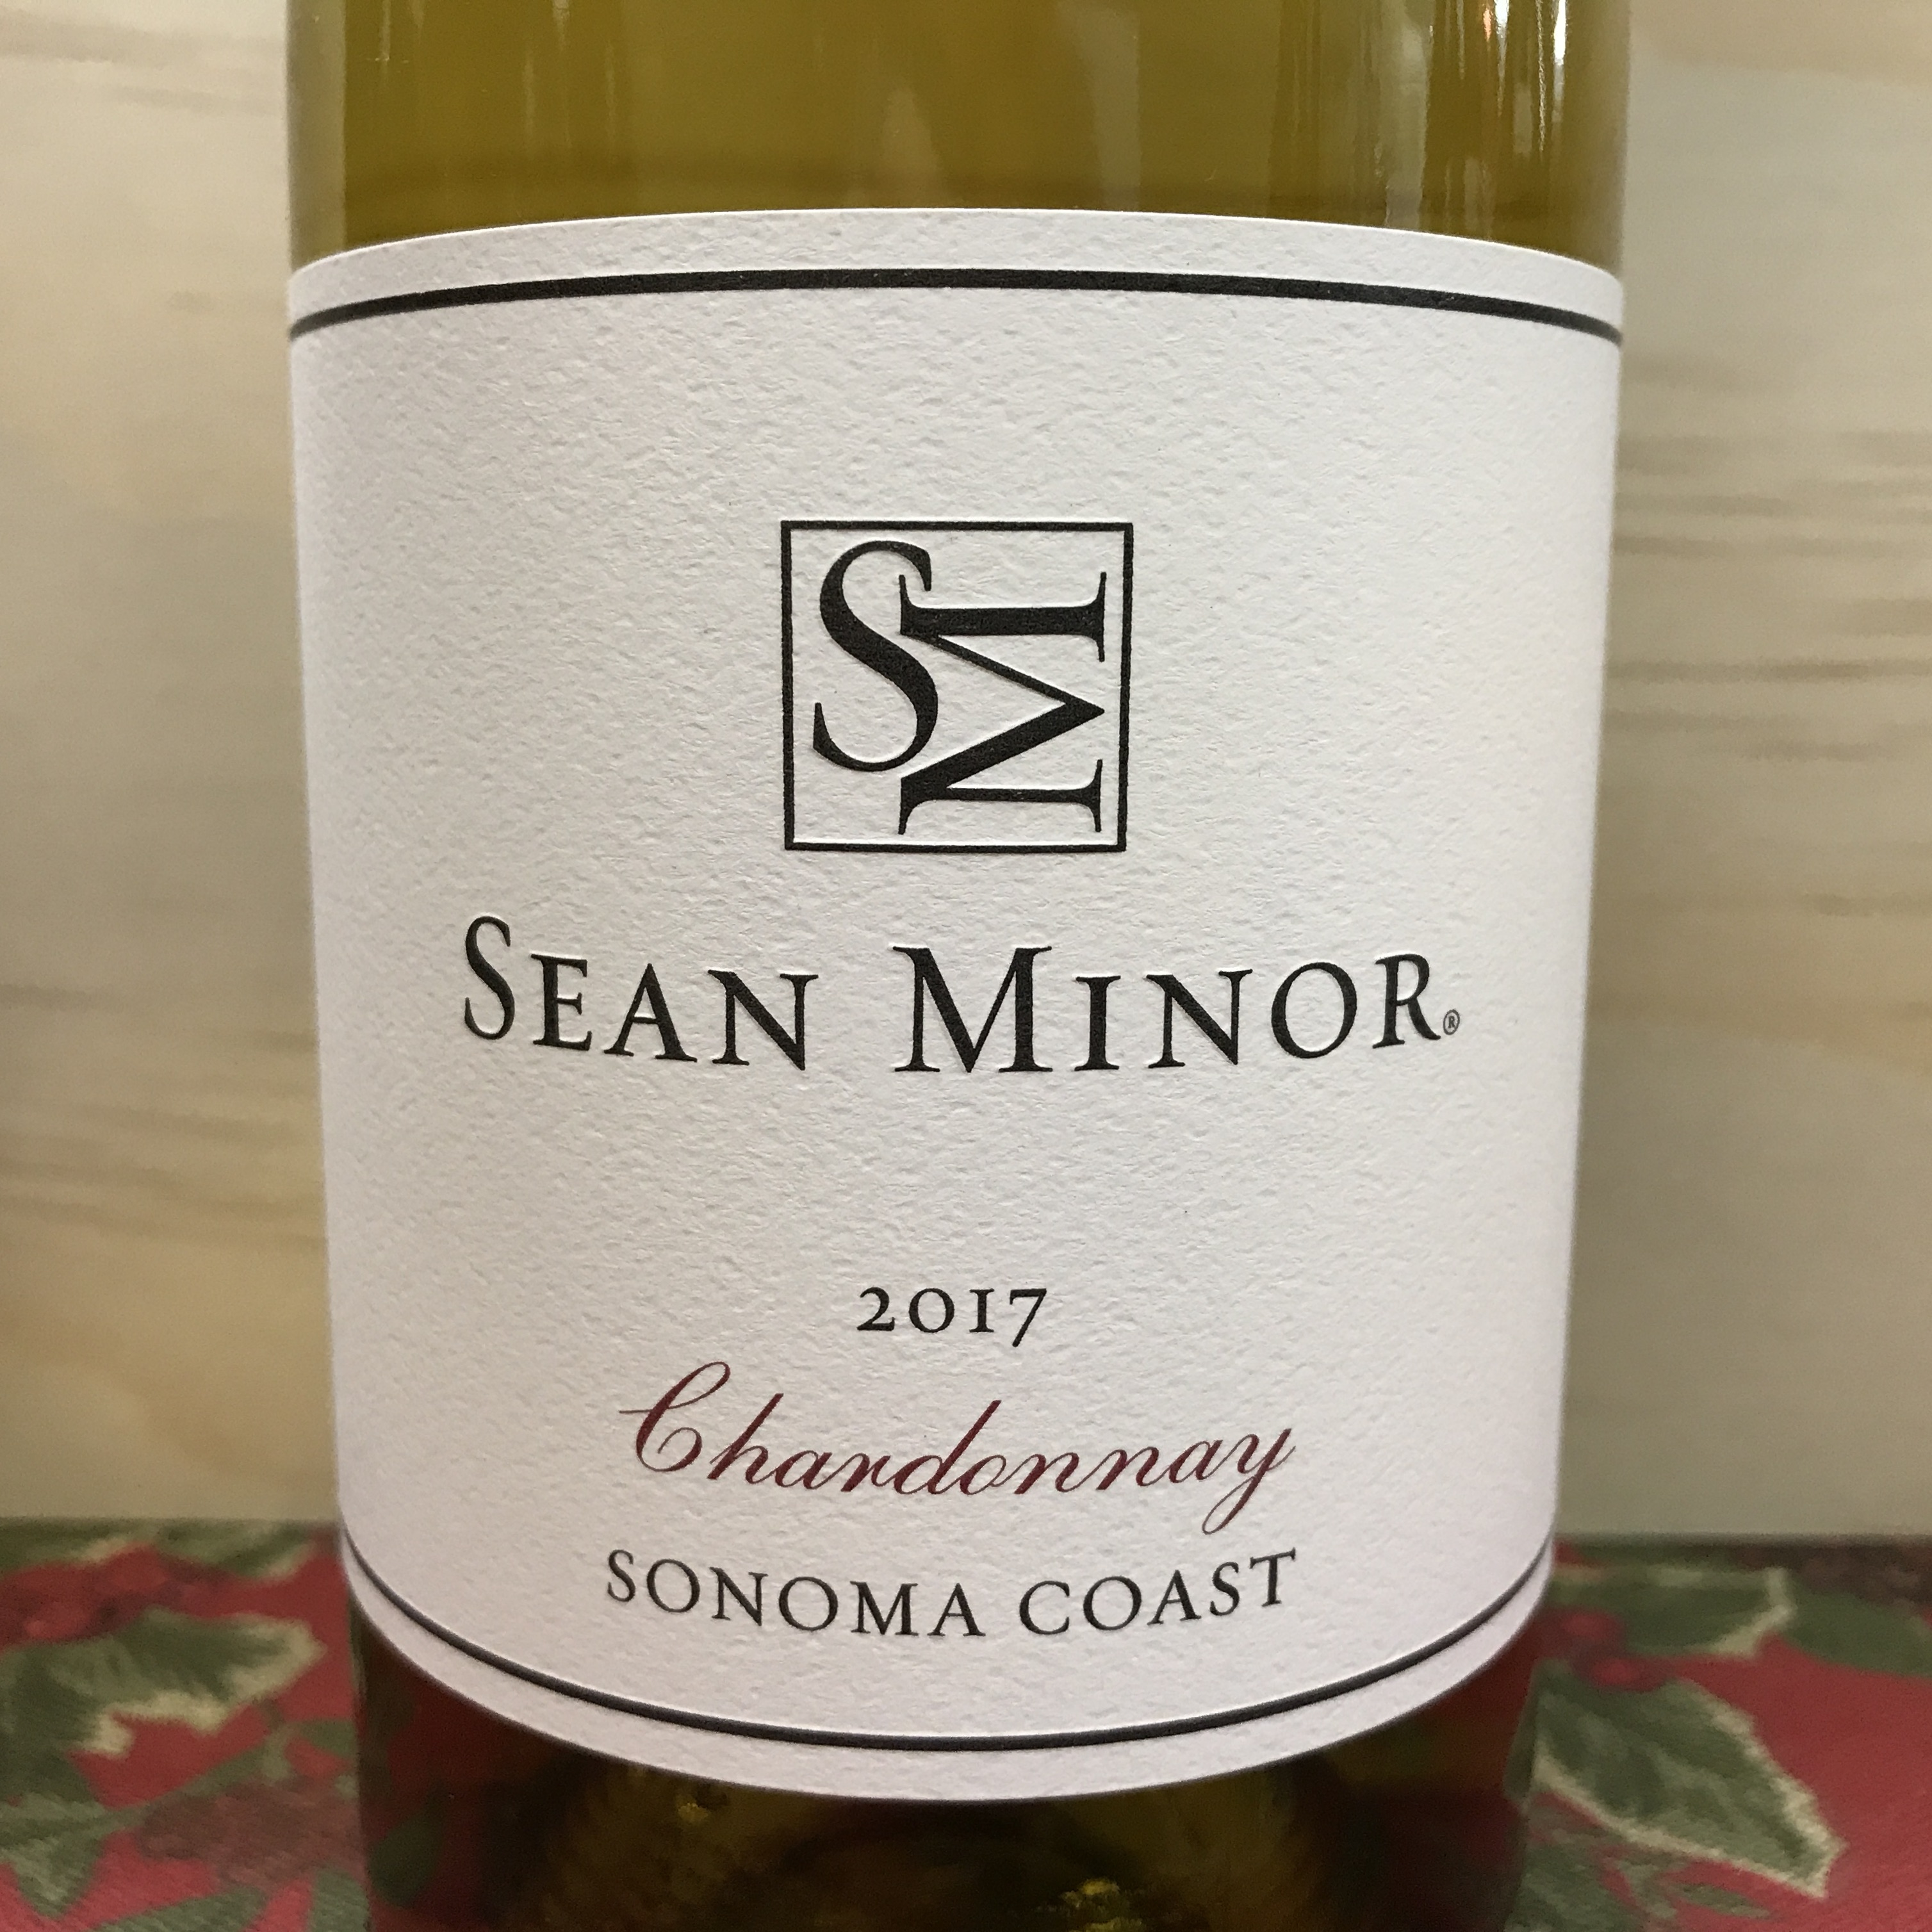 Sean Minor Chardonnay Sonoma Coast 2017